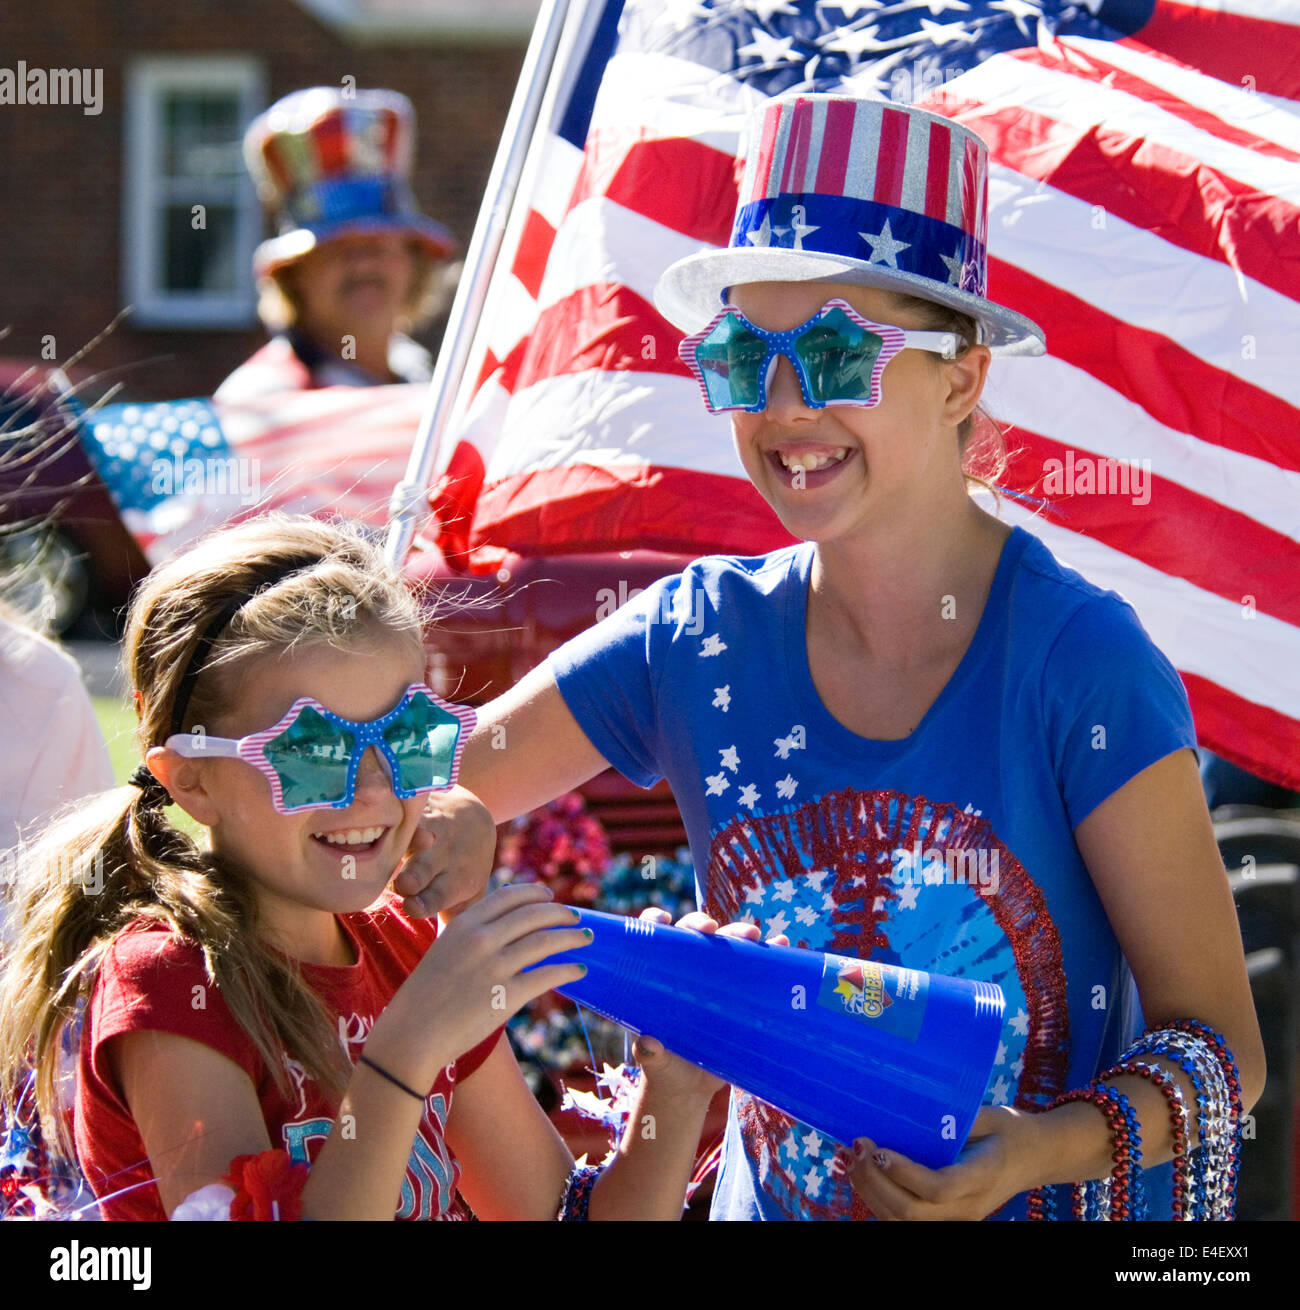 Young Girls Celebrating Independence Day in New Pekin Indiana - Stock Image